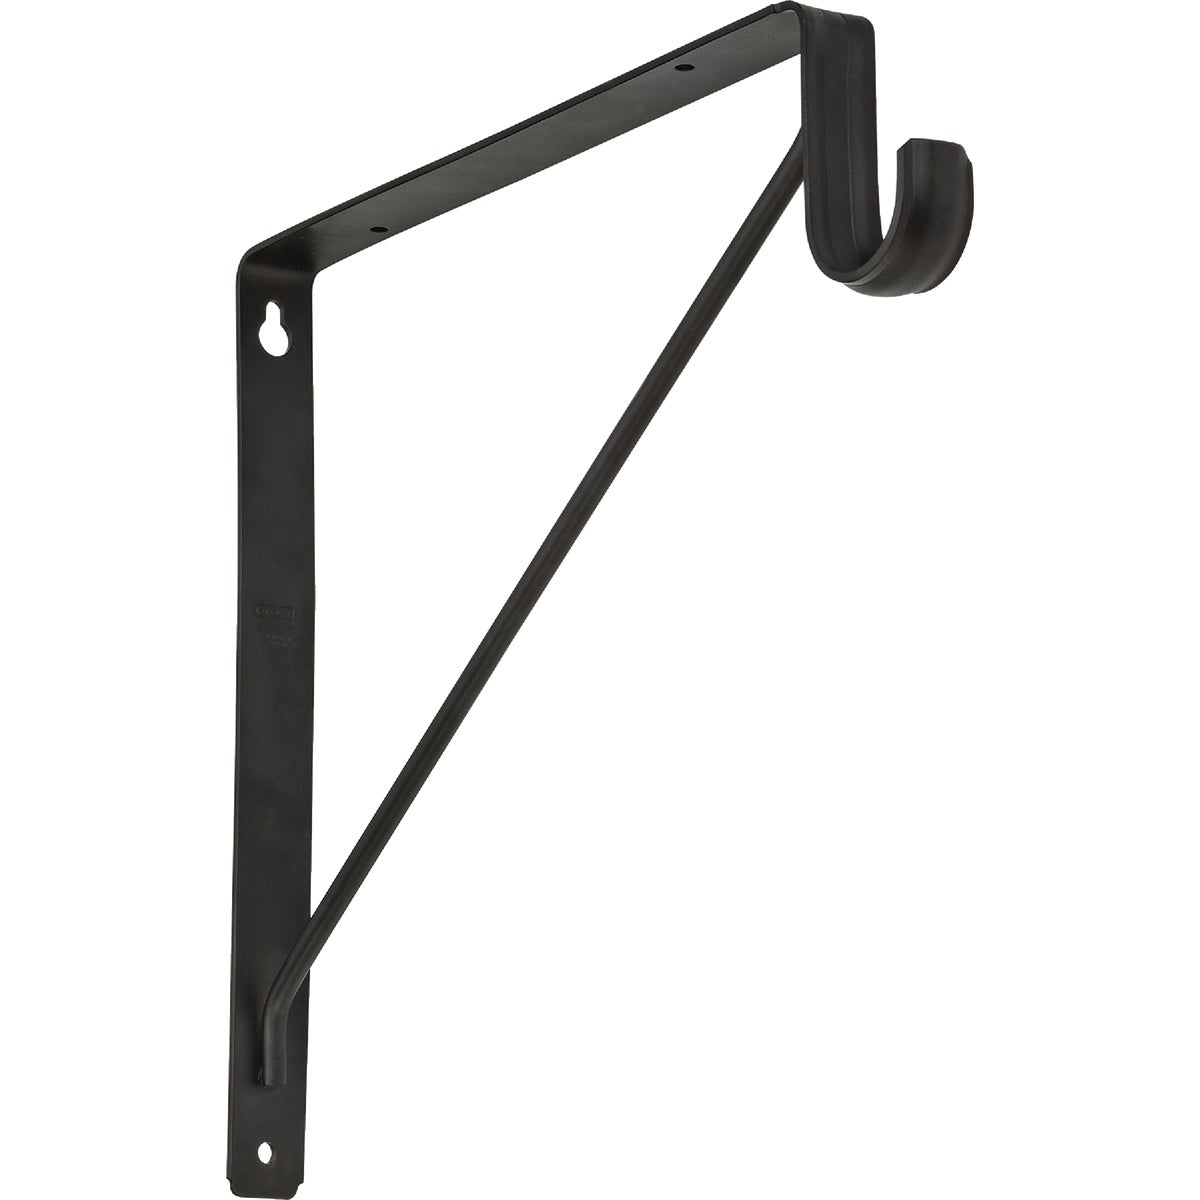 ORB SHELF & ROD BRACKET - N833855 by National Mfg Co